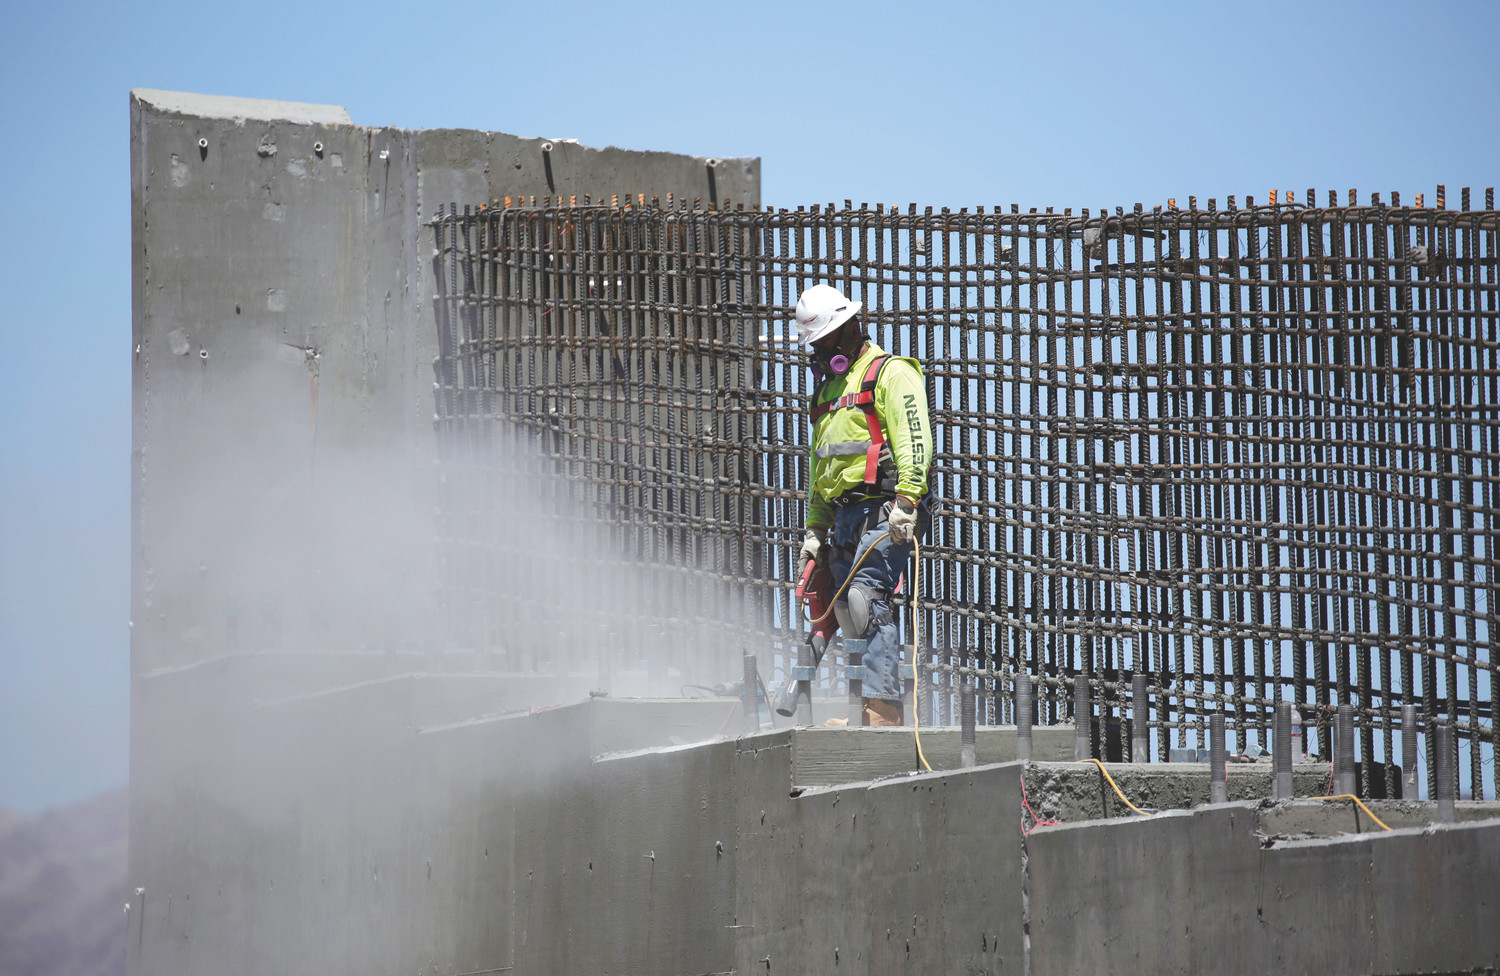 A man works on the Southern Nevada portion of U.S. Interstate 11 near Boulder City, Nevada, in May 2017.